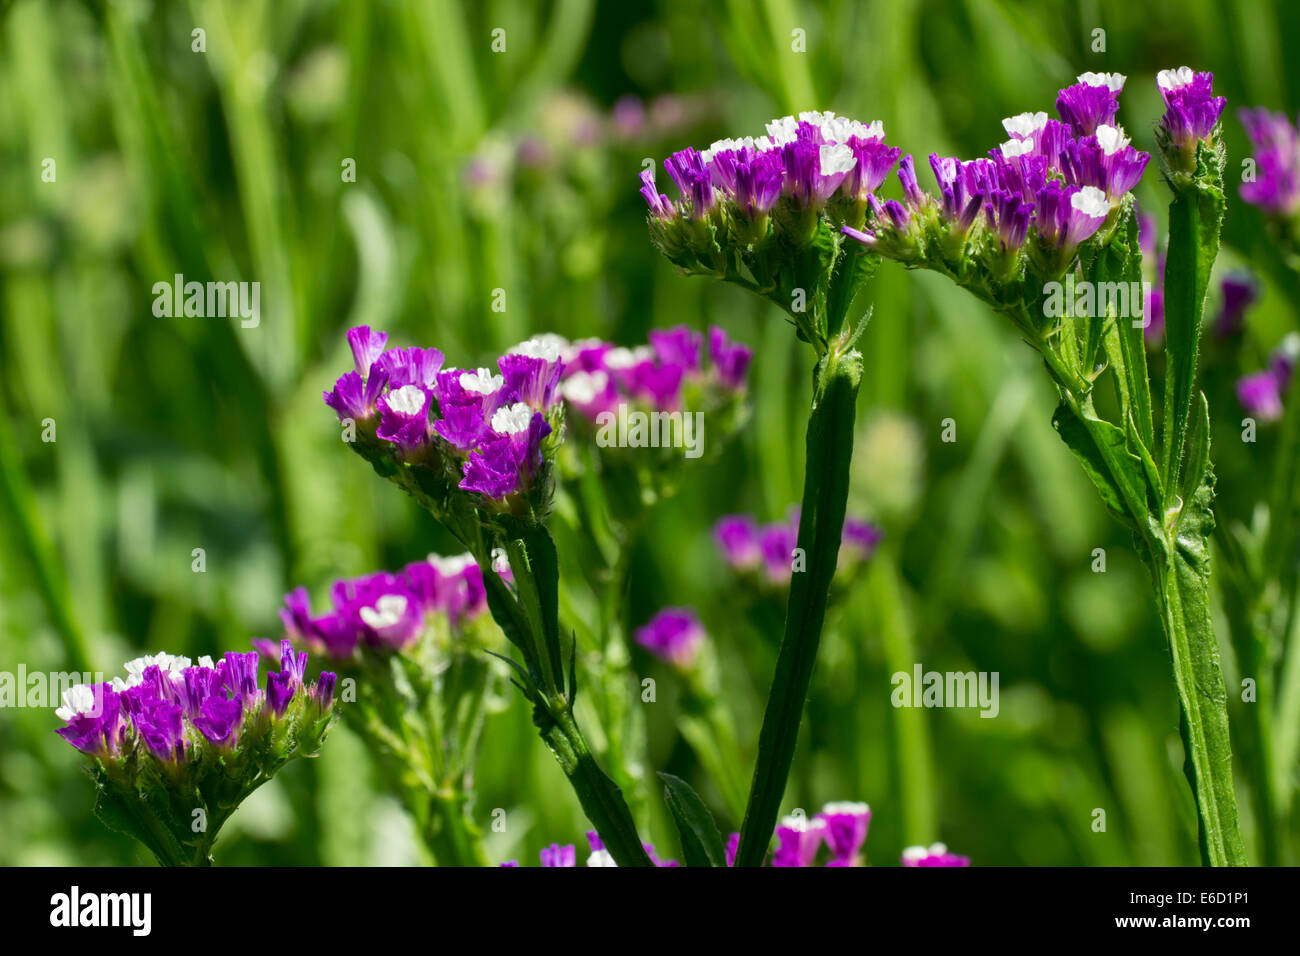 Flowers of the annual Statice, Limonium sinuatum 'Purple Attraction' - Stock Image